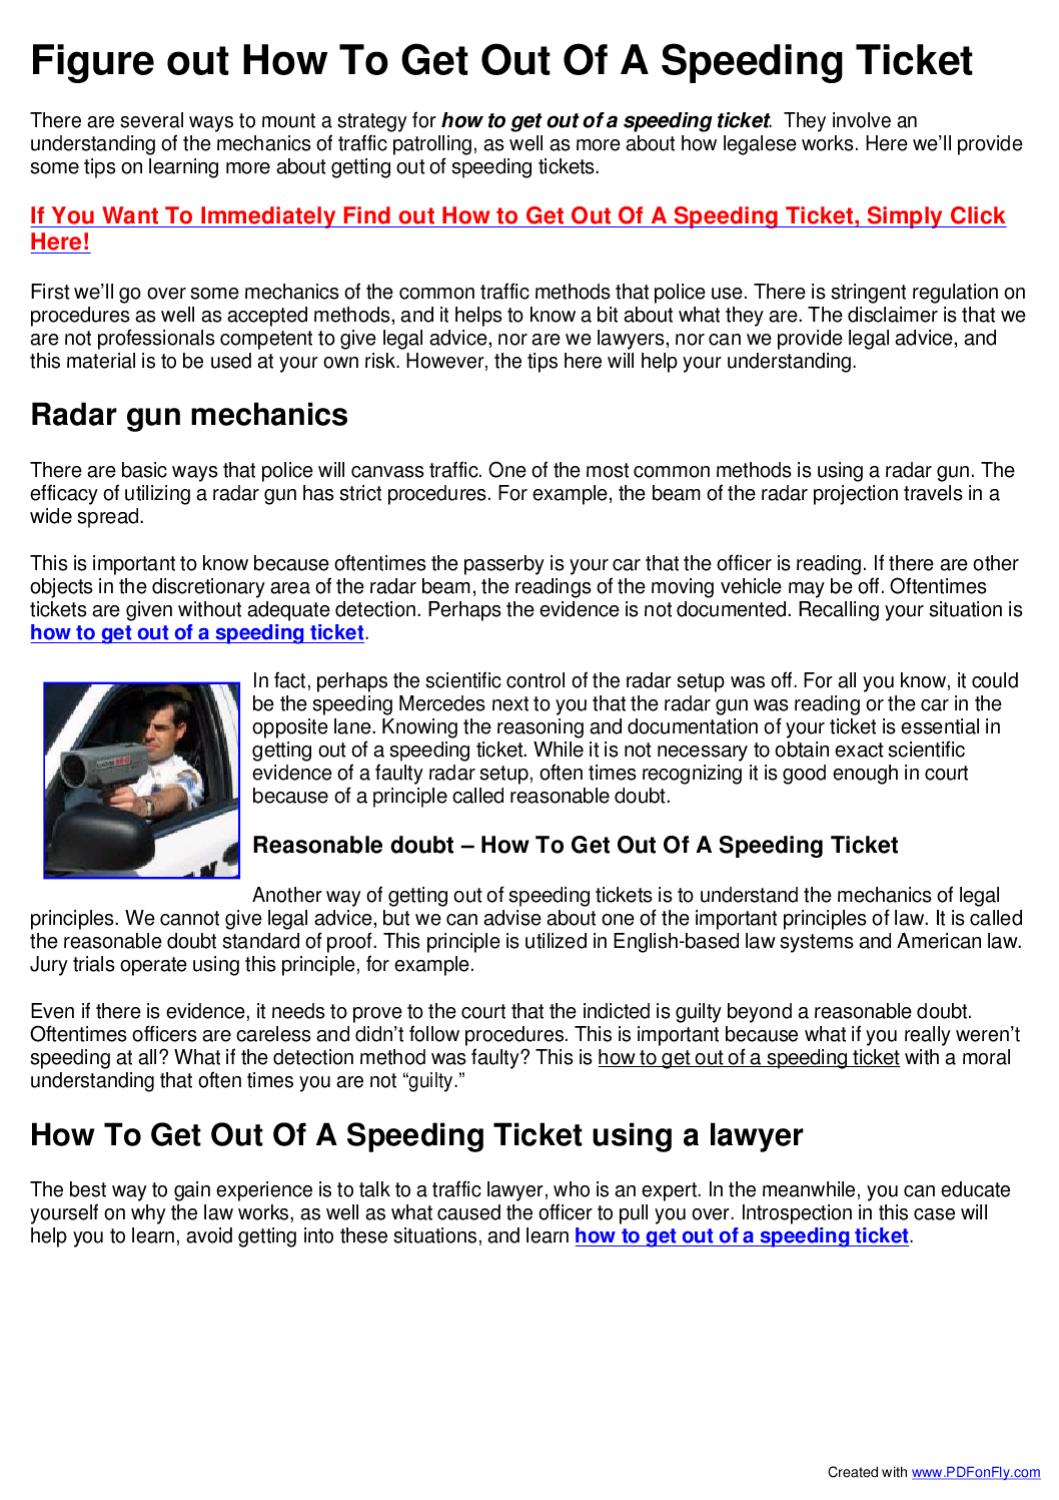 How To Get Out of A Speeding Ticket by EIC LLC - issuu